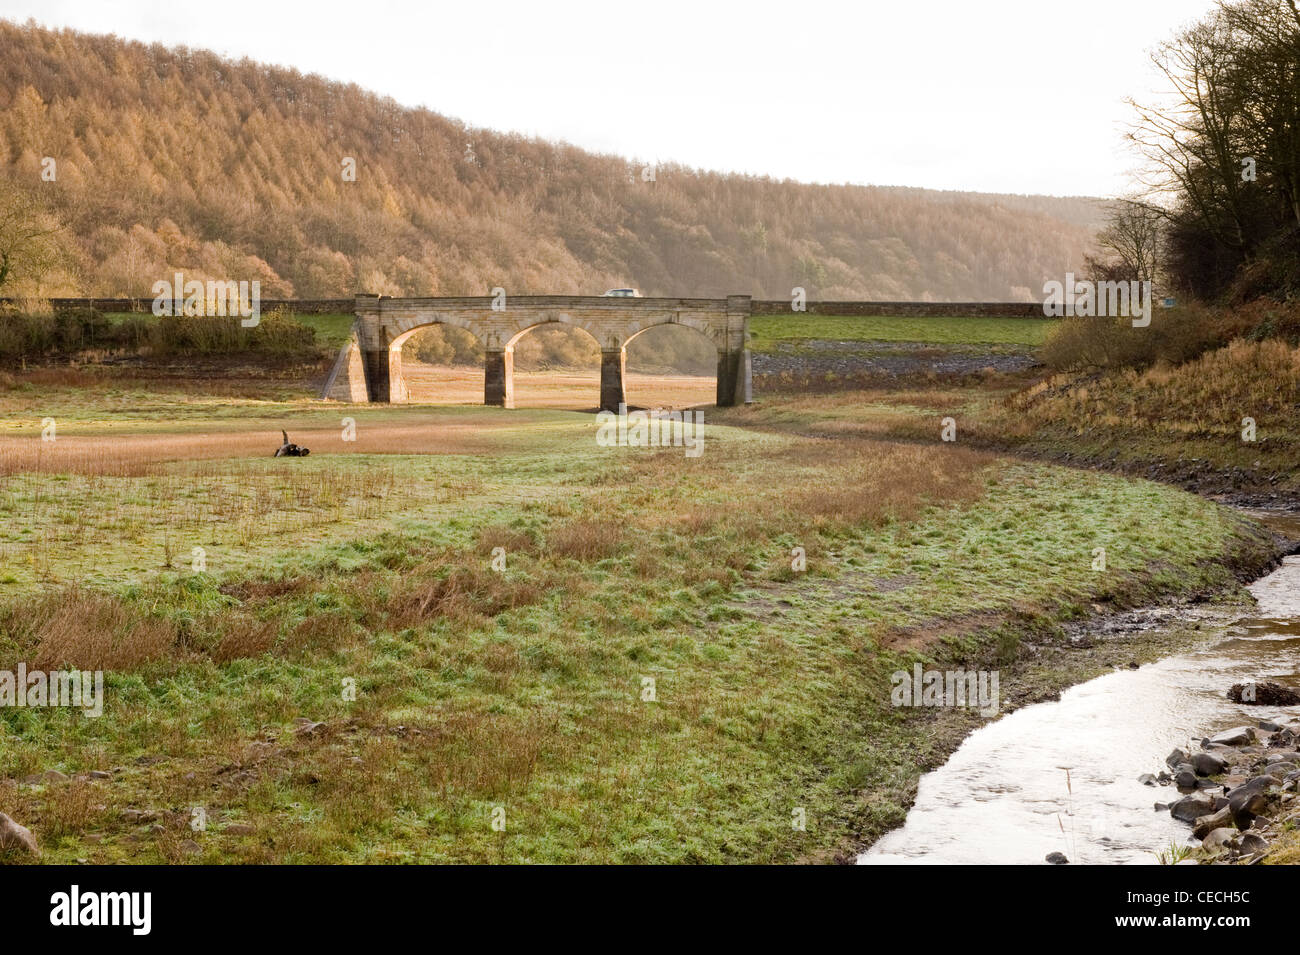 Lindley Wood Reservoir showing extremely low water levels. - Stock Image